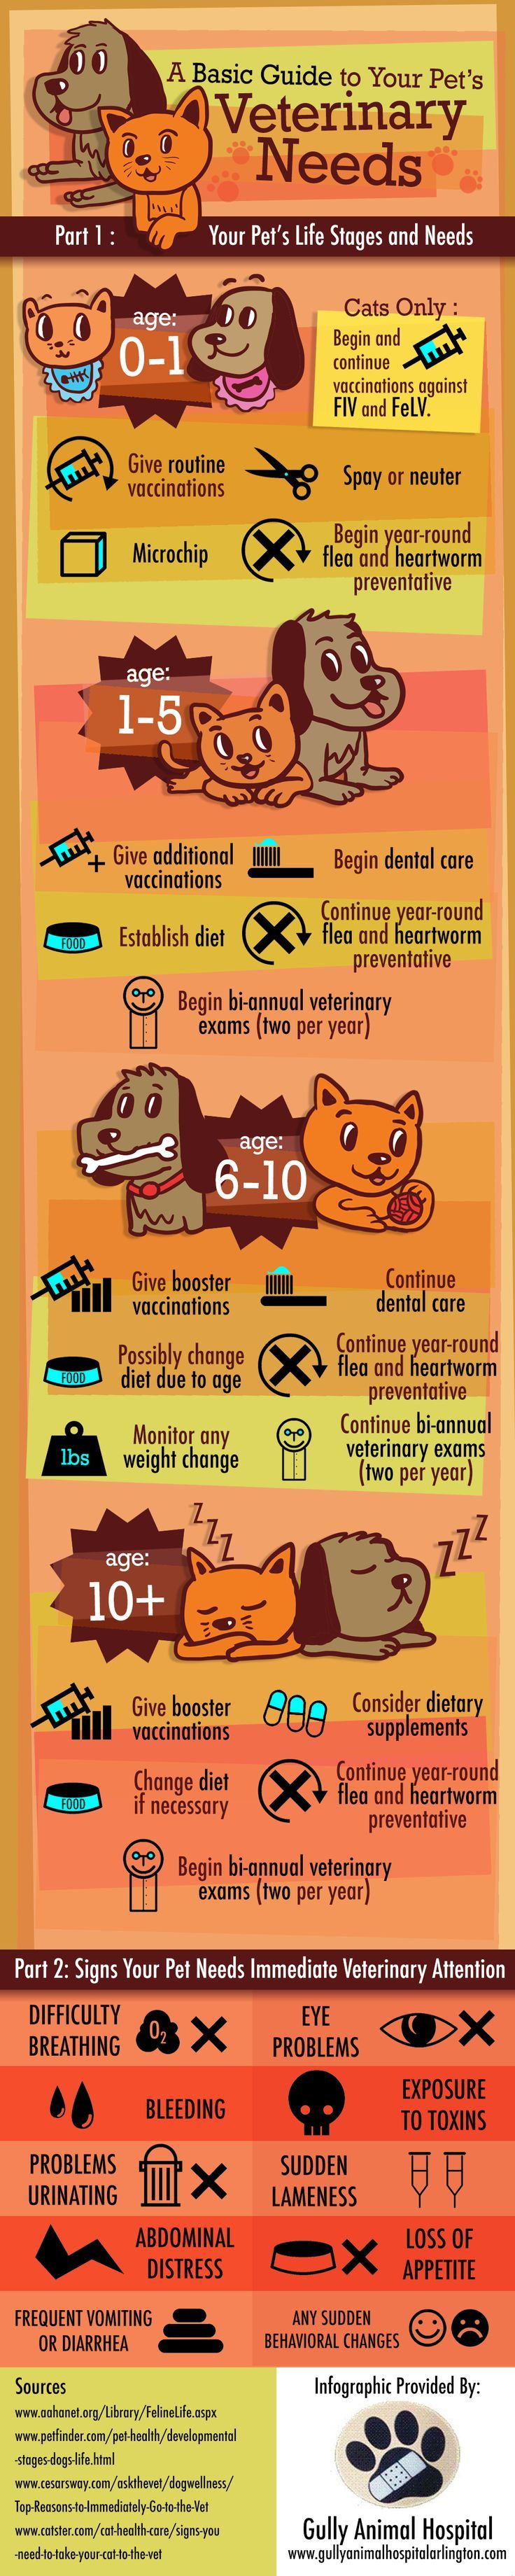 Guide to Your Pet's Veterinary Needs Infographic - An…